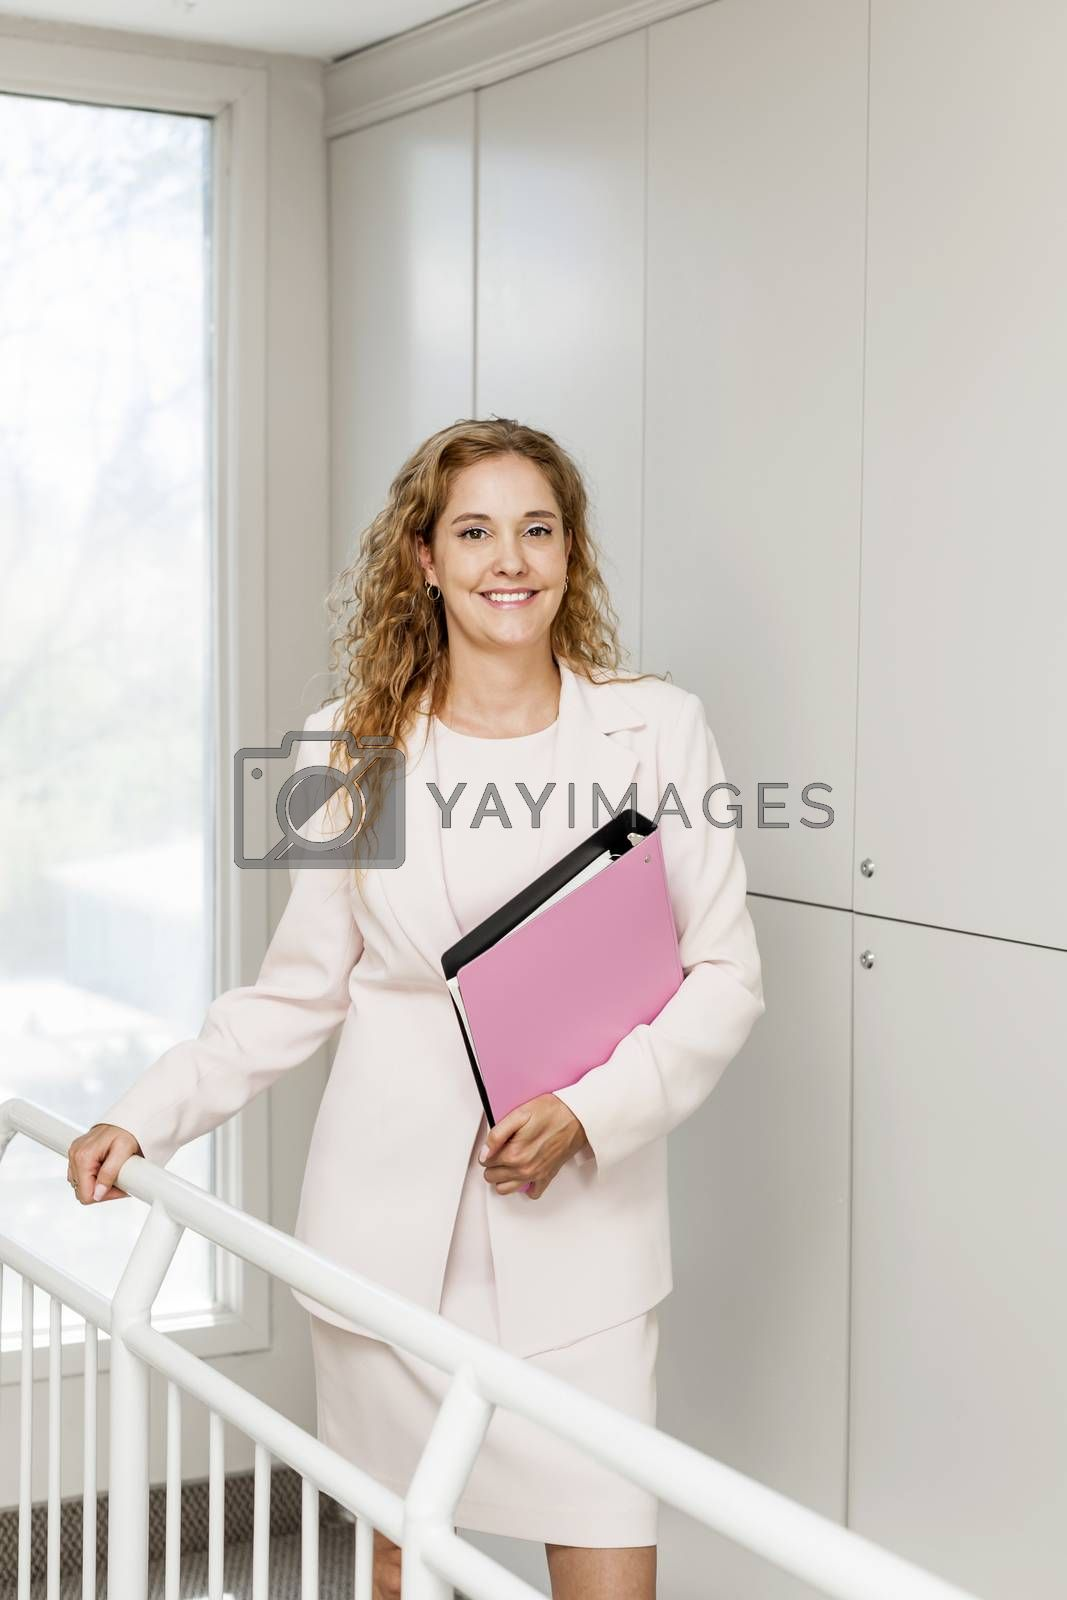 Smiling powerful business woman standing in office hallway holding binder